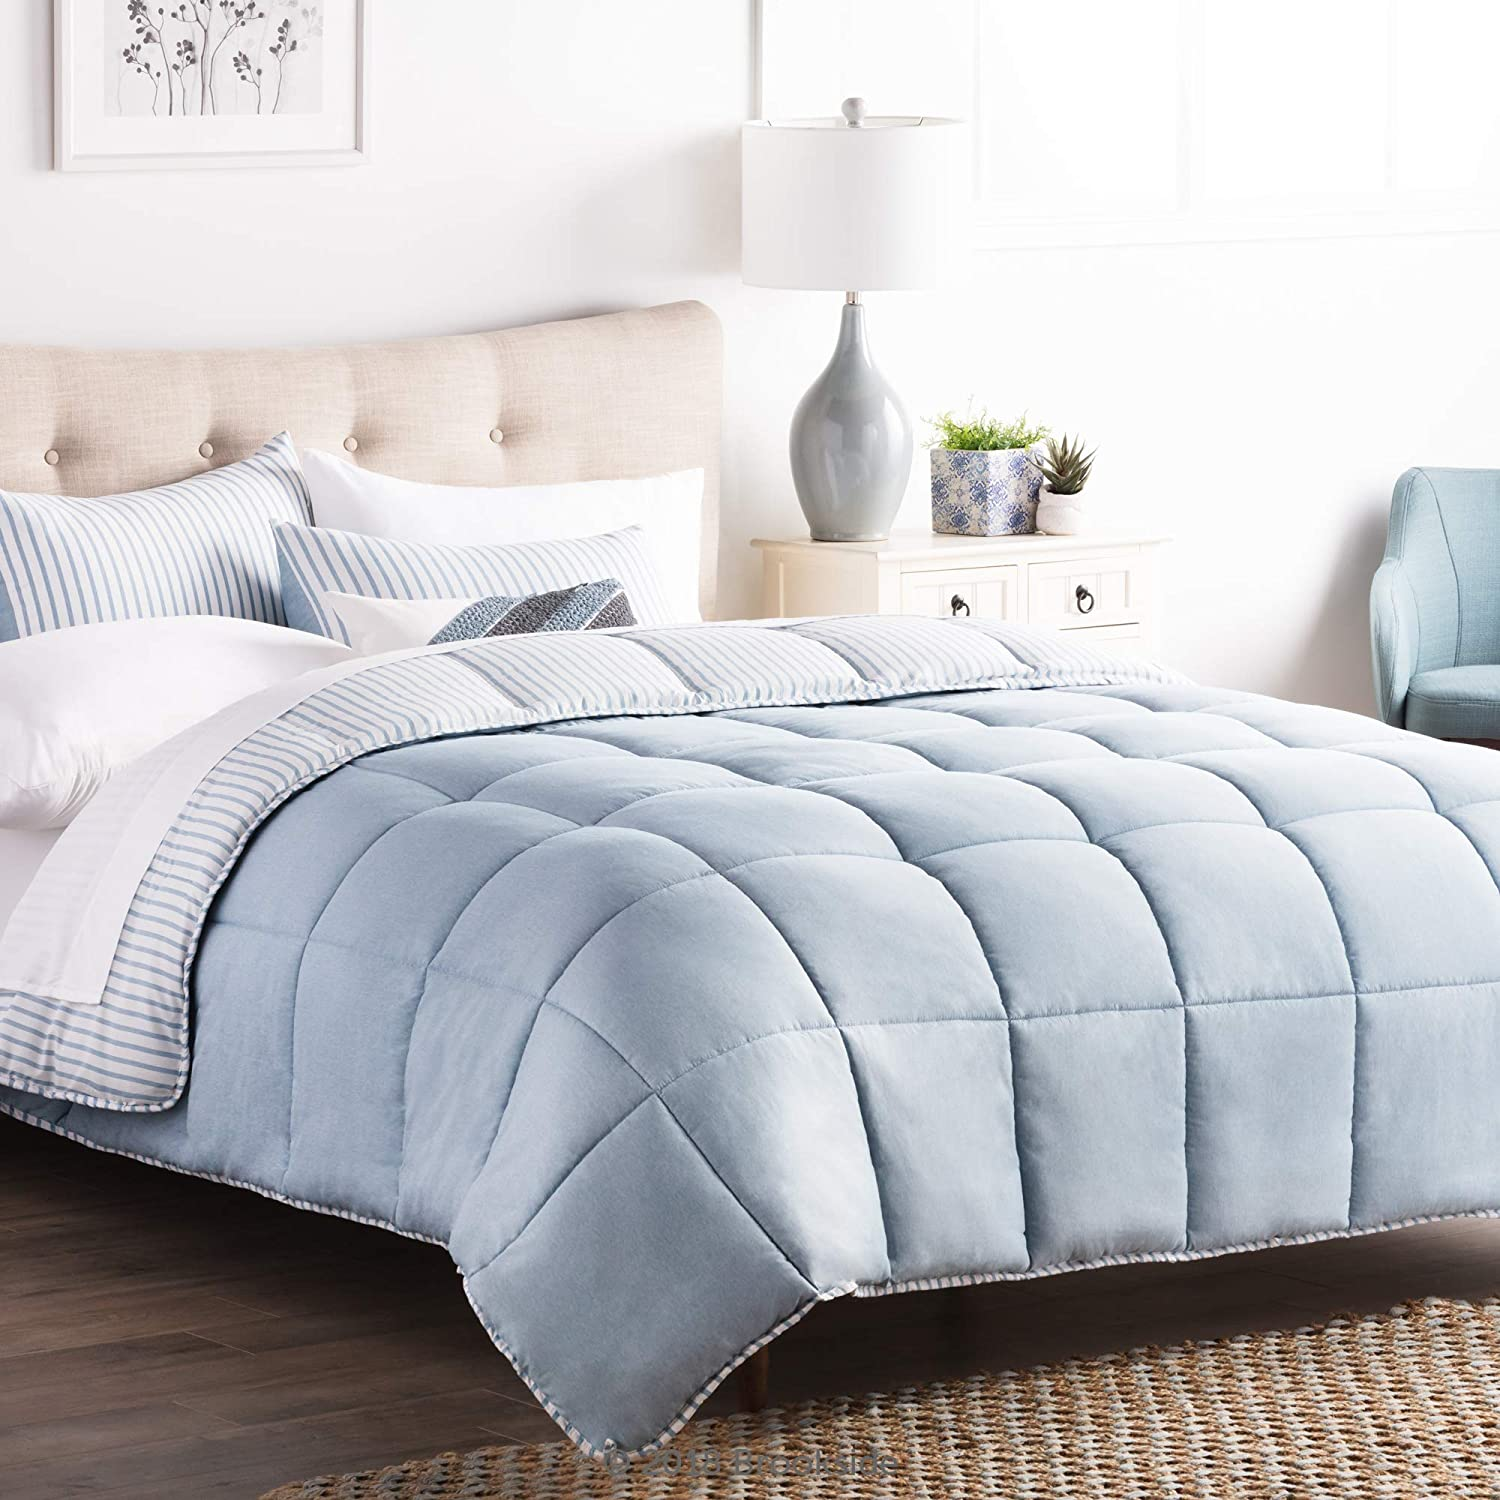 Brookside Striped Chambray Comforter Set - Includes 2 Pillow Shams - Reversible - Down Alternative - Hypoallergenic - All Season - Box Stitched Design - Queen - Calm Sea Blue